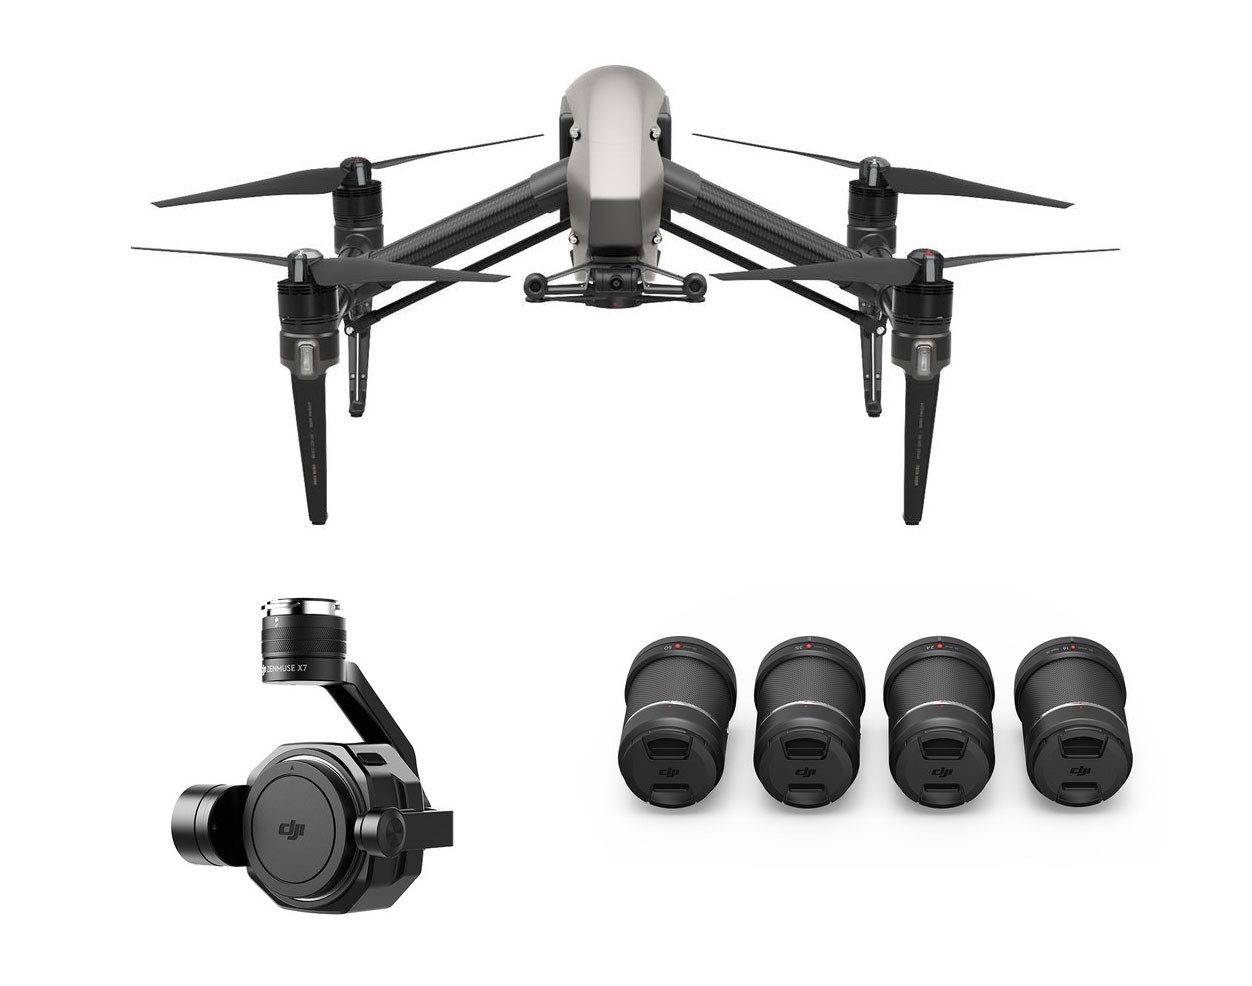 DJI Inspire 2 with X7 Camera - Full Inspire2 X7 package. Lenses 16mm, 24mm, 35mm and 50mm. Other cameras and lens options available.